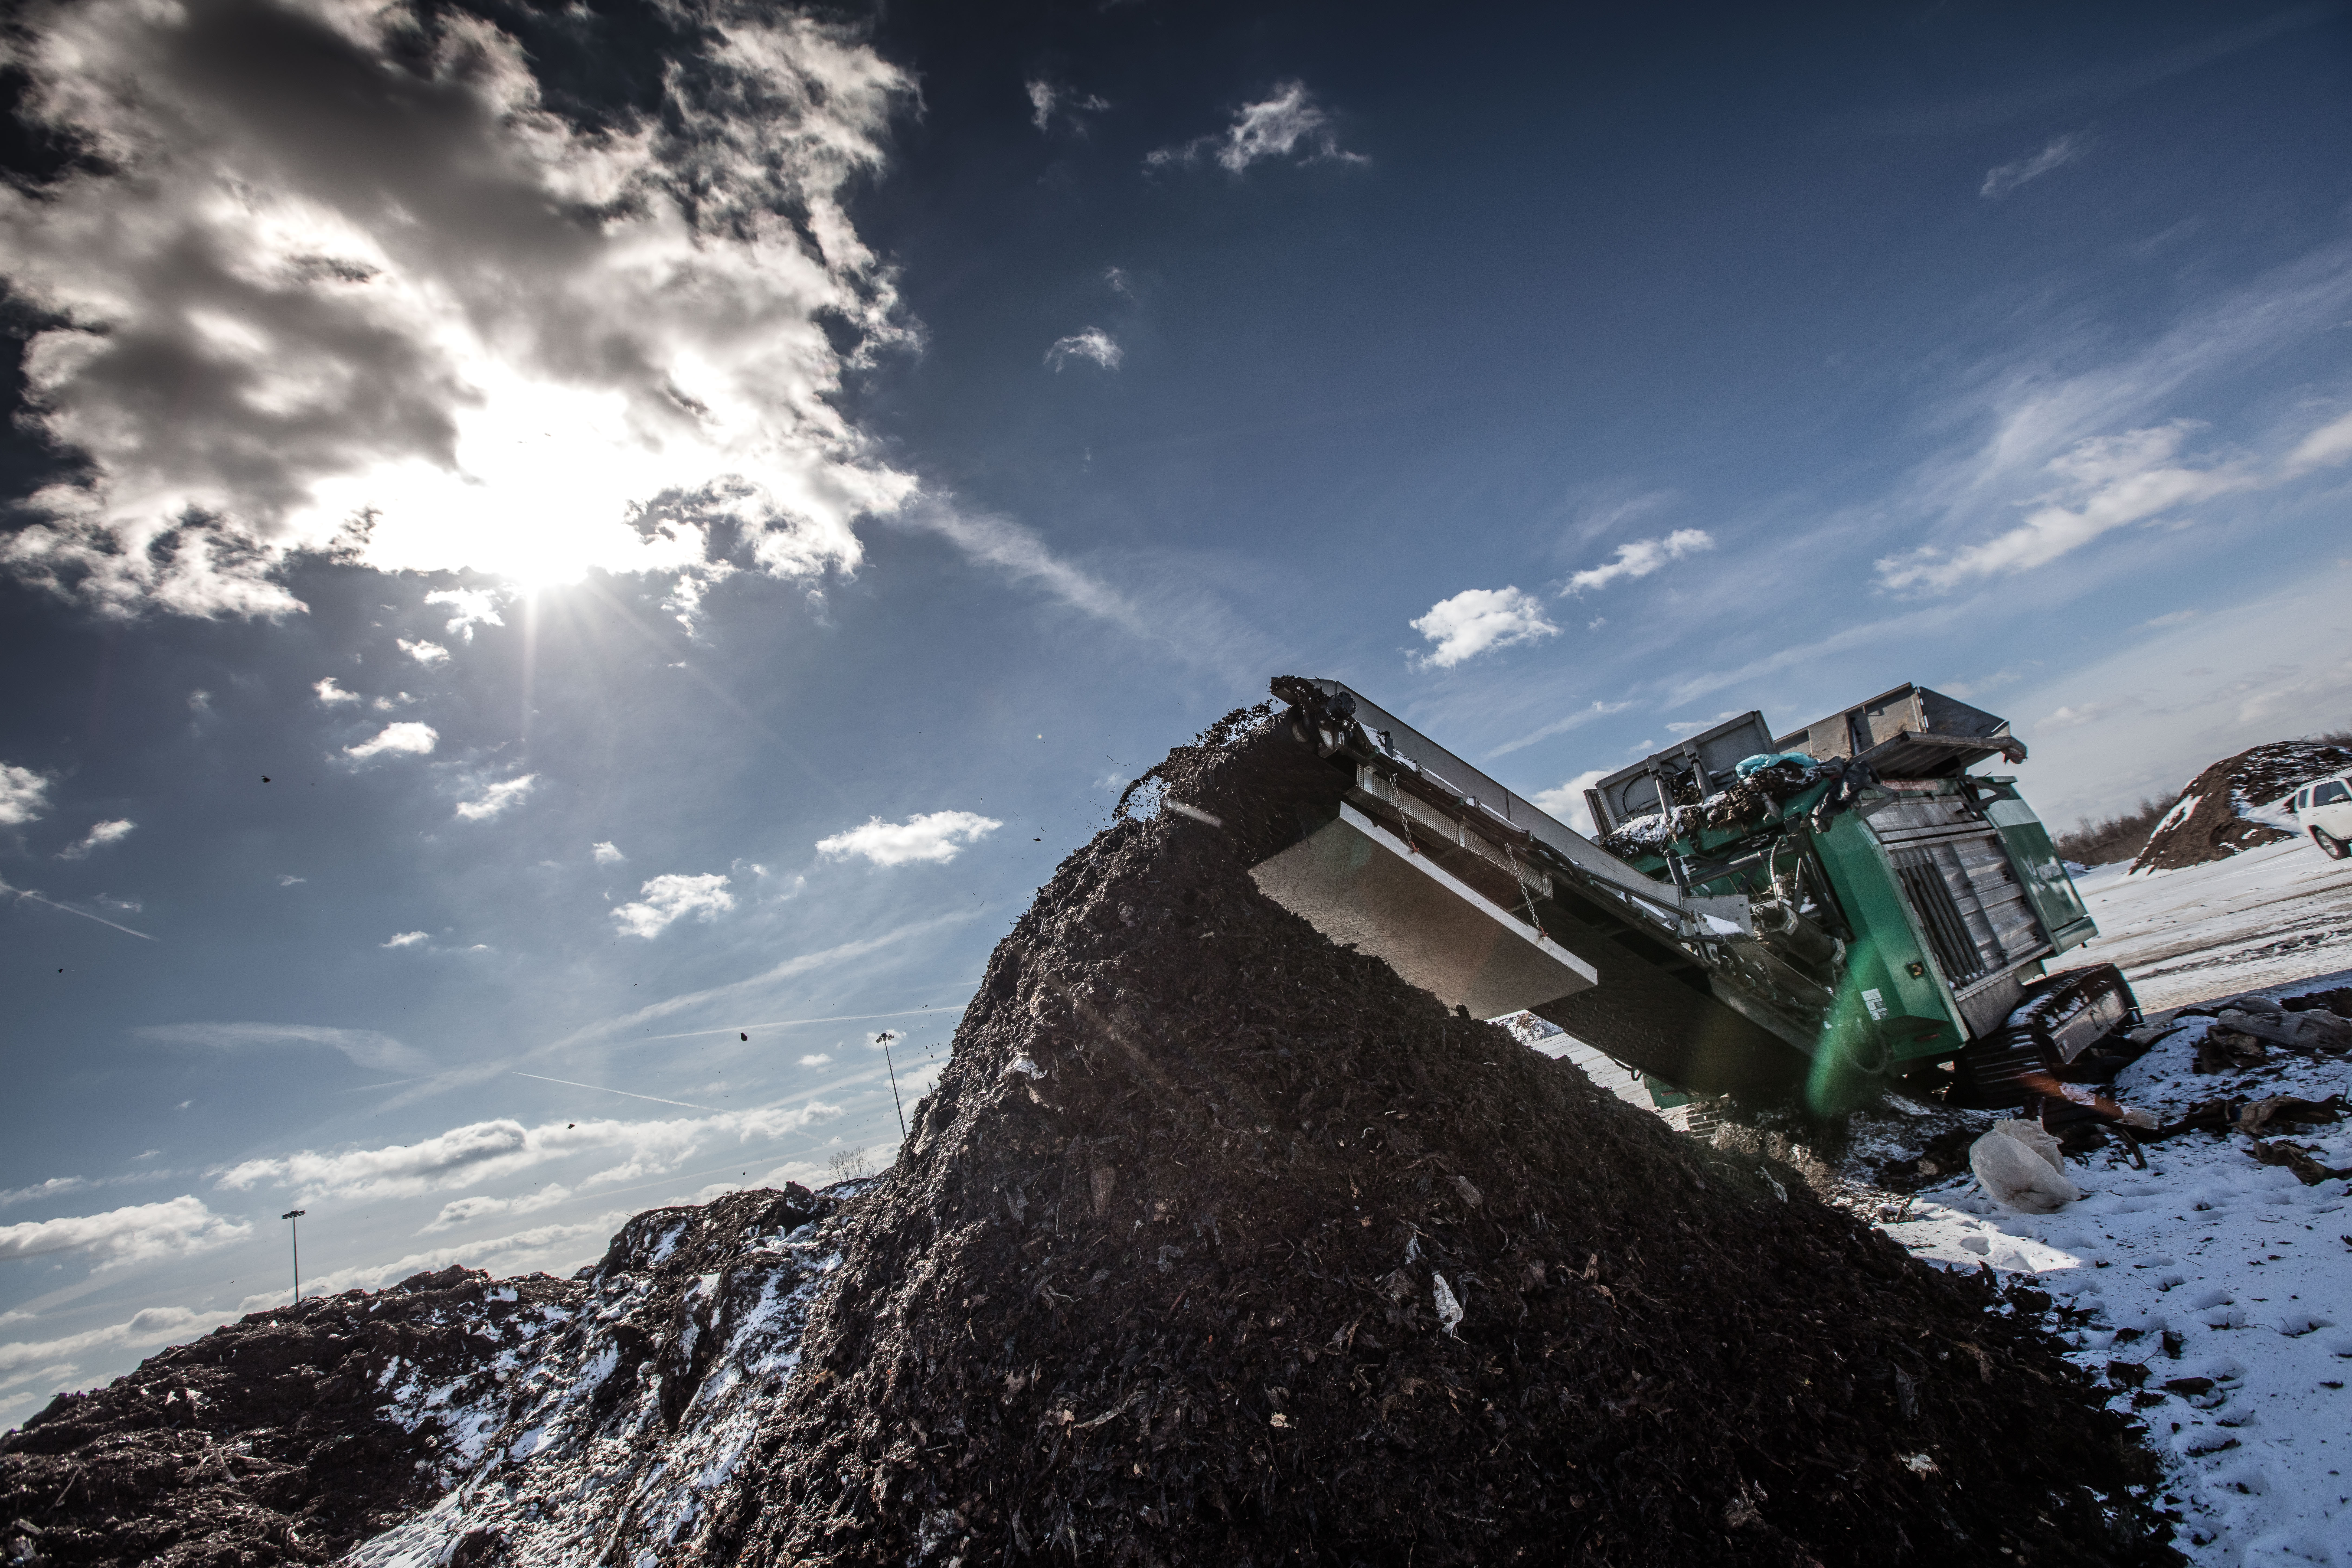 Leading Organics Managemnet Across the United States, Biomass being stacked up